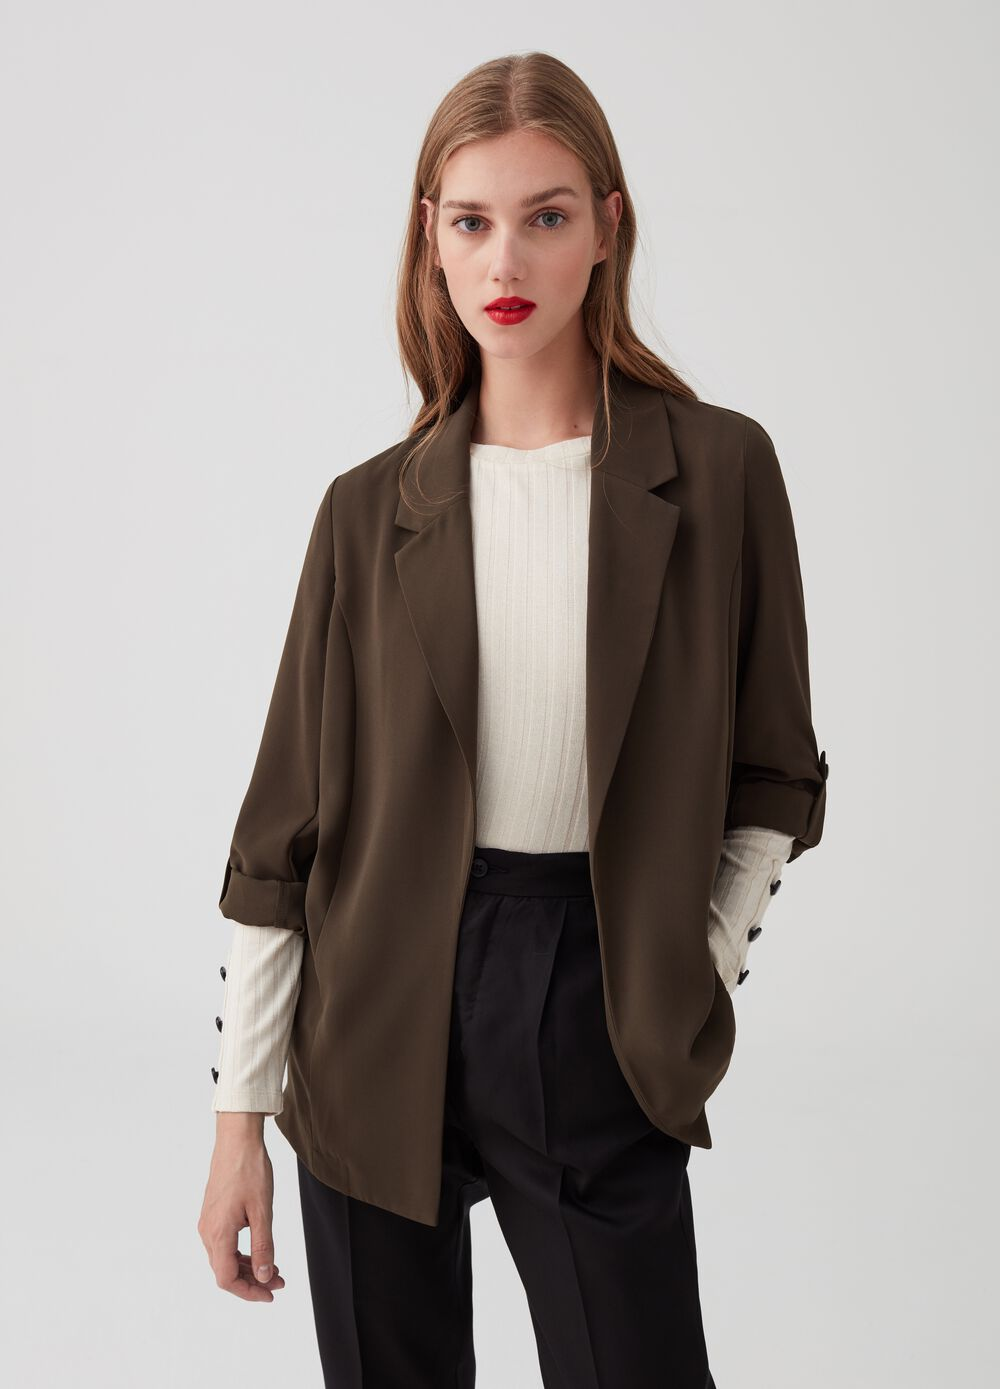 Solid colour destructured jacket